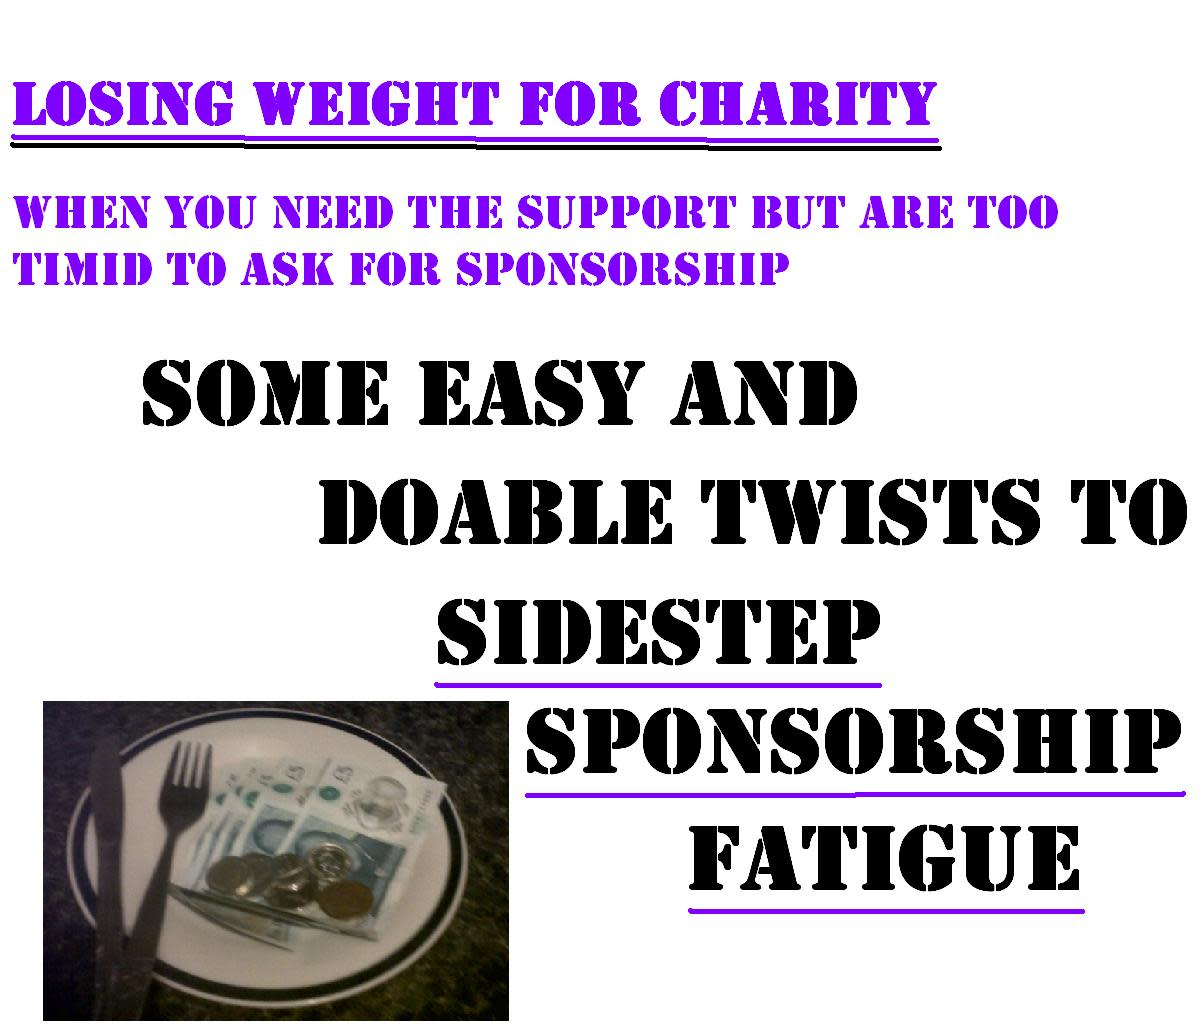 A Twist on Motivation: Sponsorship to Lose Weight for Charity